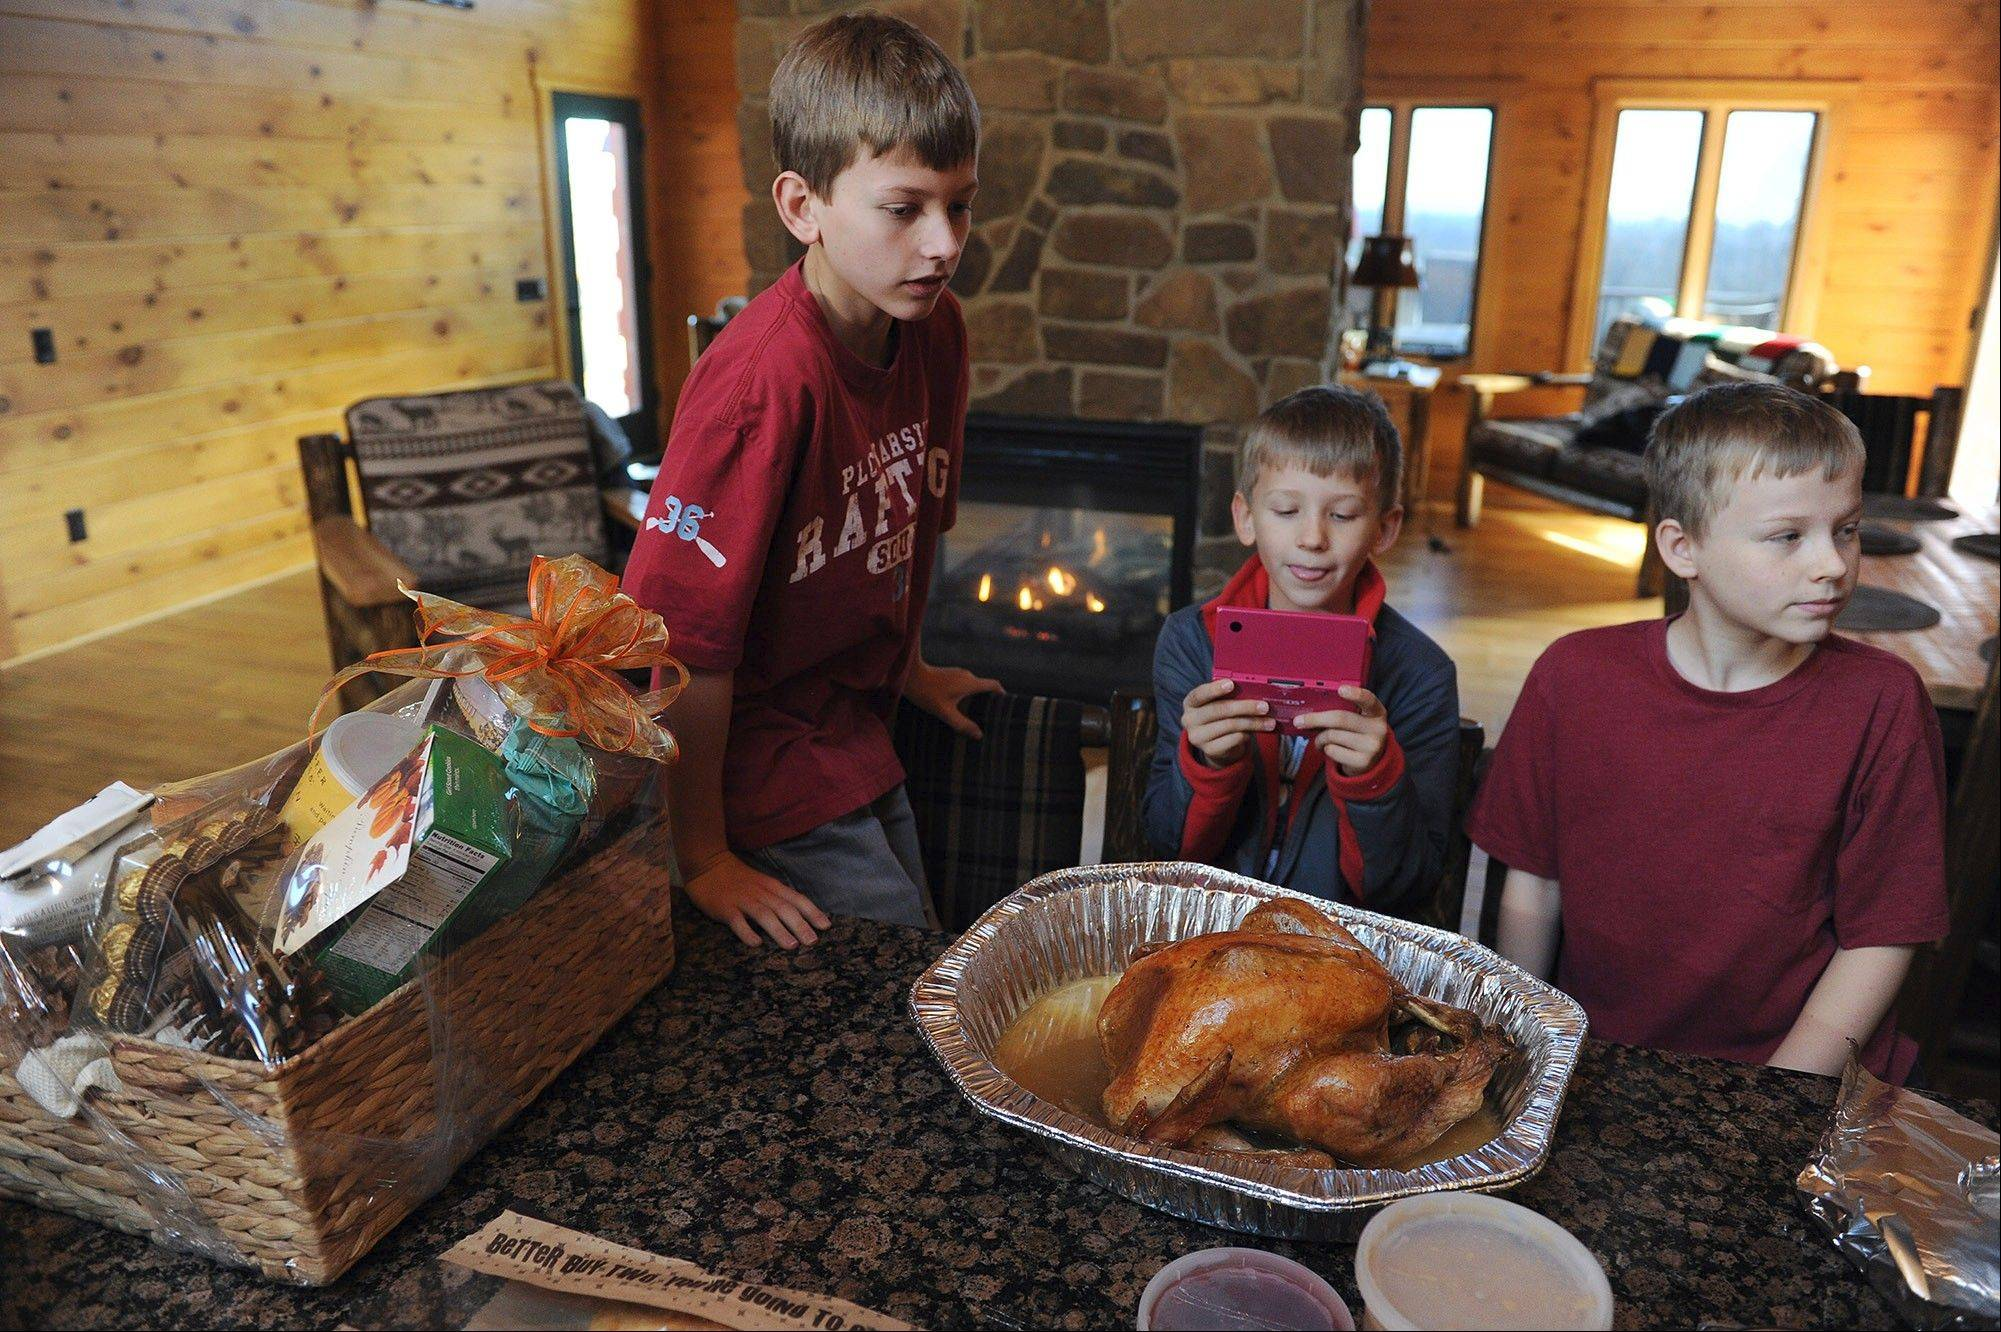 From left, brothers Lucas Zajdel, Cole Zajdel and Wyatt Zajdel wait to eat a Thanksgiving meal provided by Boulder Crest Retreat in Bluemont, Va. Their mother, Liza Kazee, was in the Air Force. Her husband, Matt Kazee, is in the Navy.